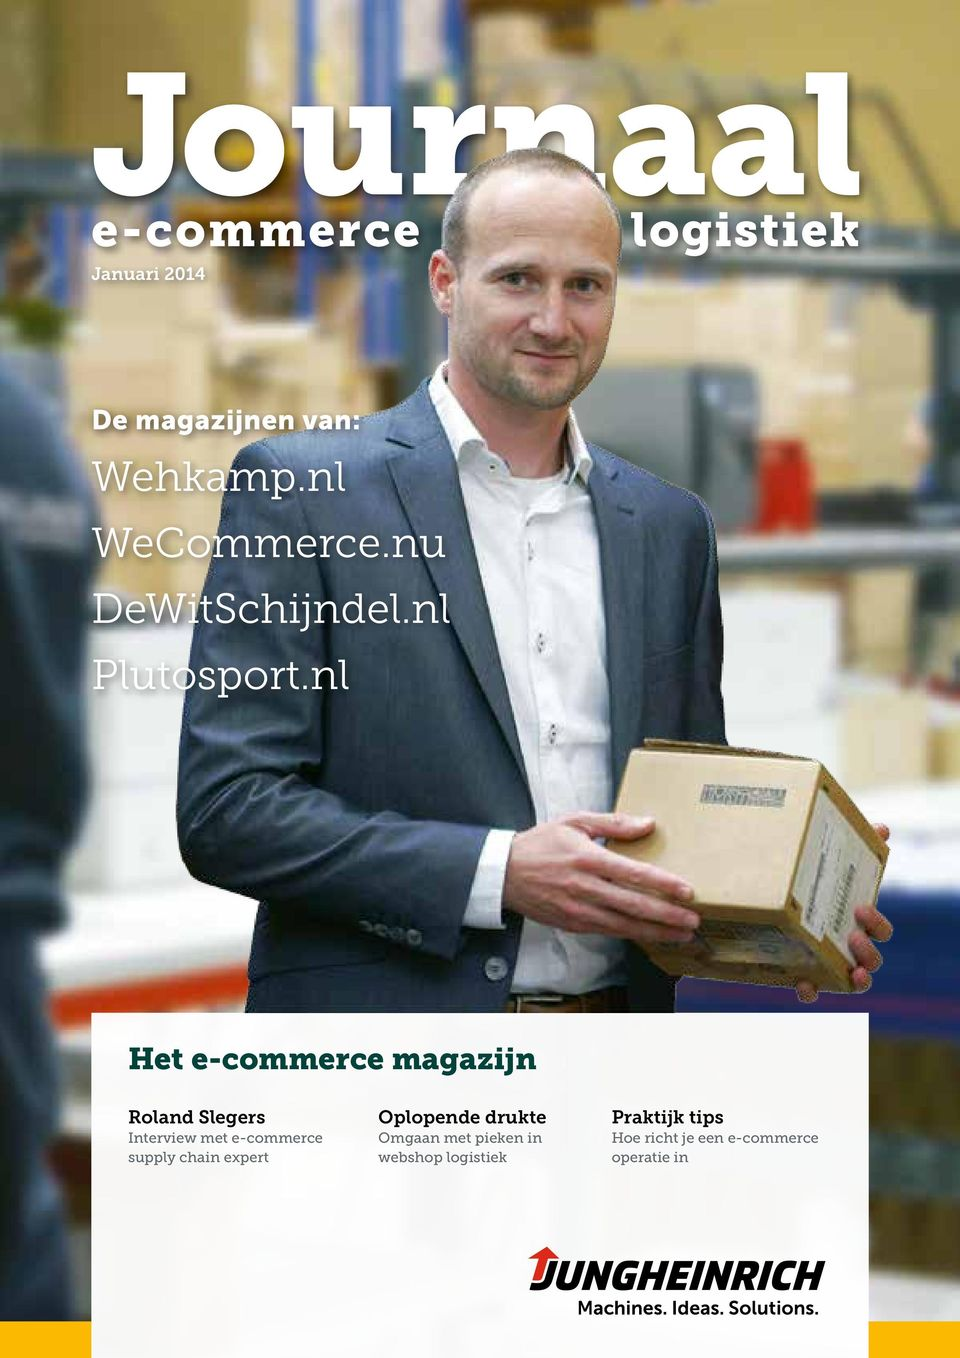 nl Het e-commerce magazijn Roland Slegers Interview met e-commerce supply